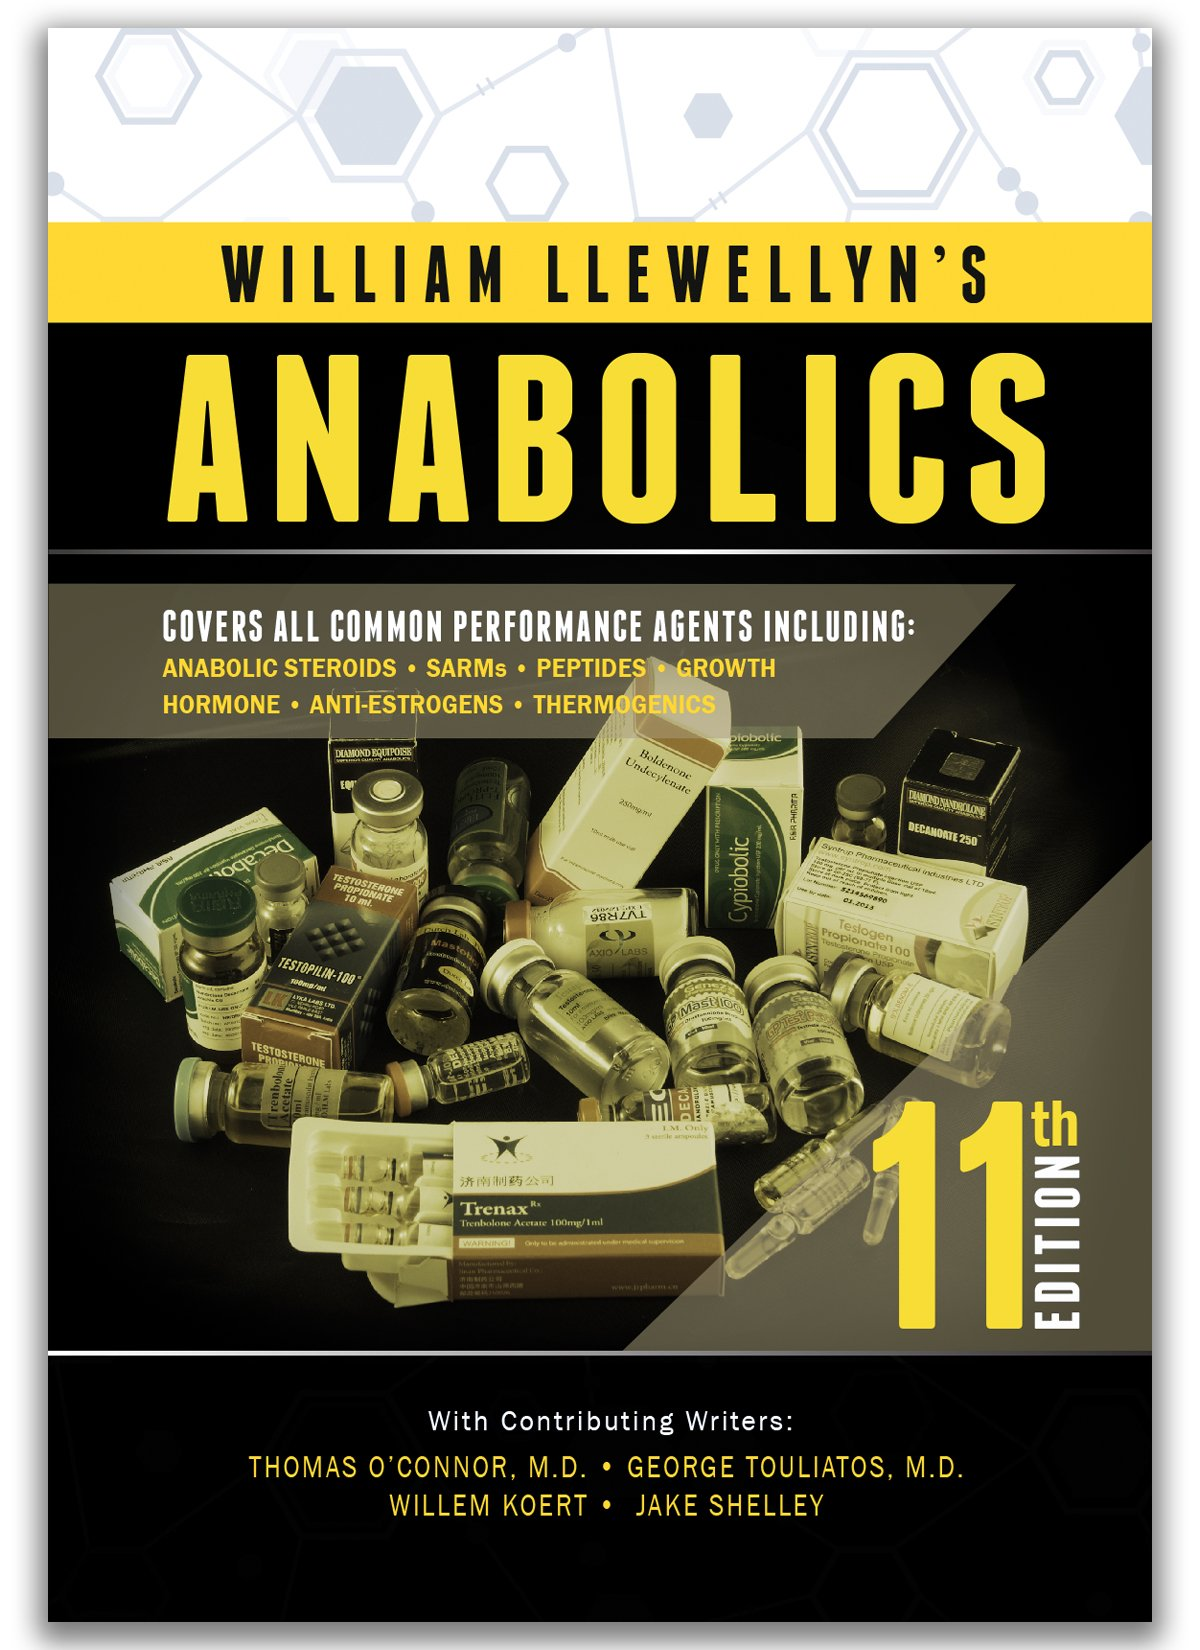 Anabolics, 10th ed. (william llewellyn's anabolics) by william.